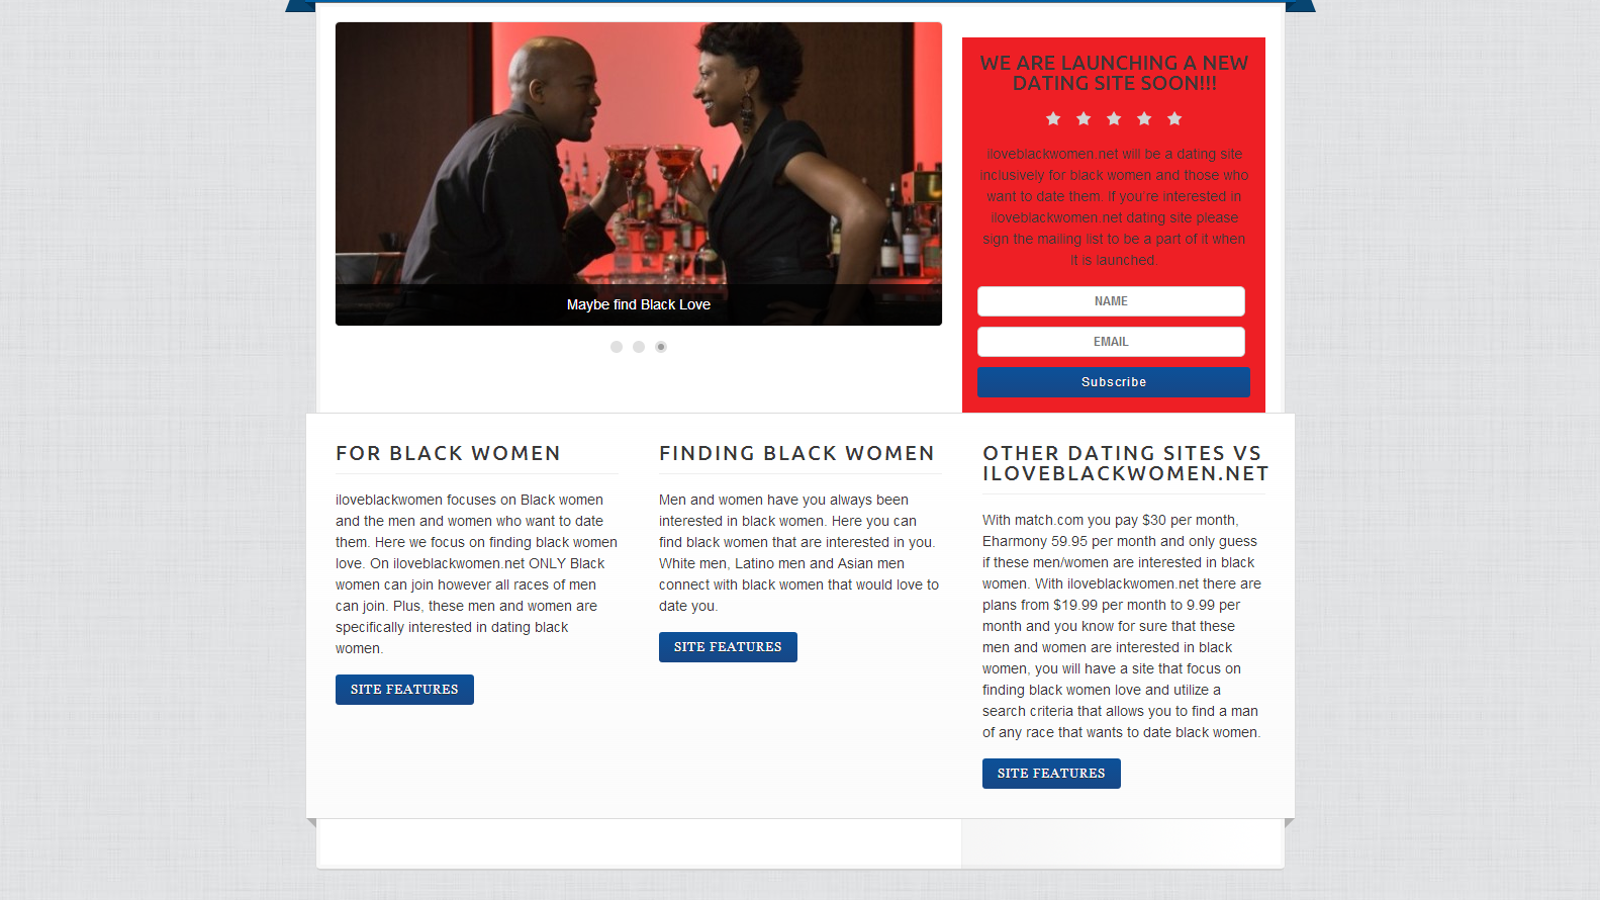 blanchardville black women dating site Interracial dating: the new enlightenmentless than a century ago, interracial dating was something you didn't talk about, and something to hide if you did prefer a person of a different color.